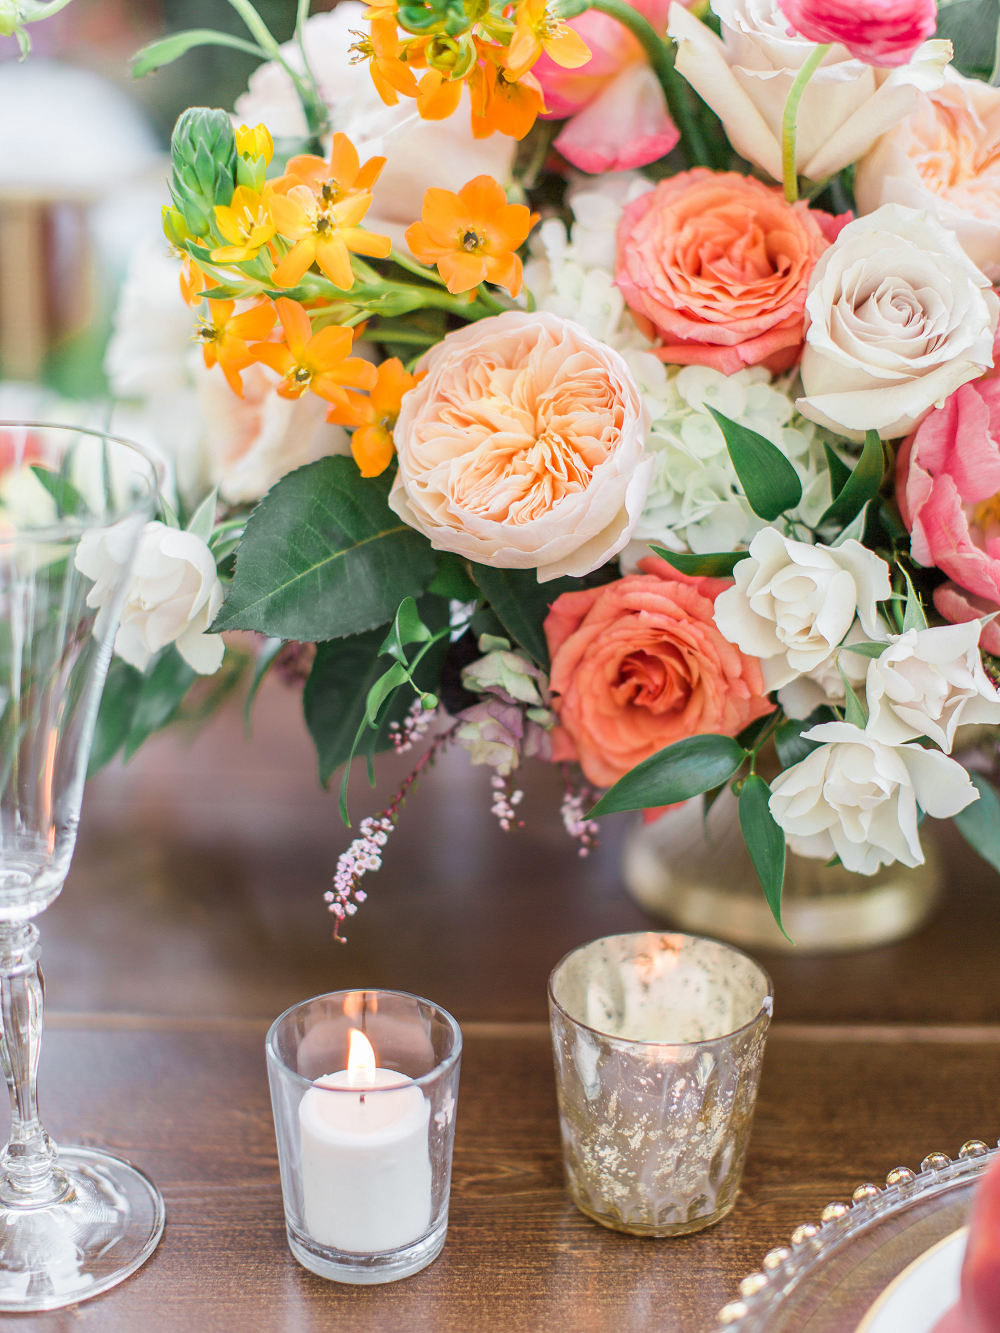 Whimsical Summer Wedding Styled Shoot at Henderson Castle Featured in WeddingDay Magazine Flower Arrangement Table